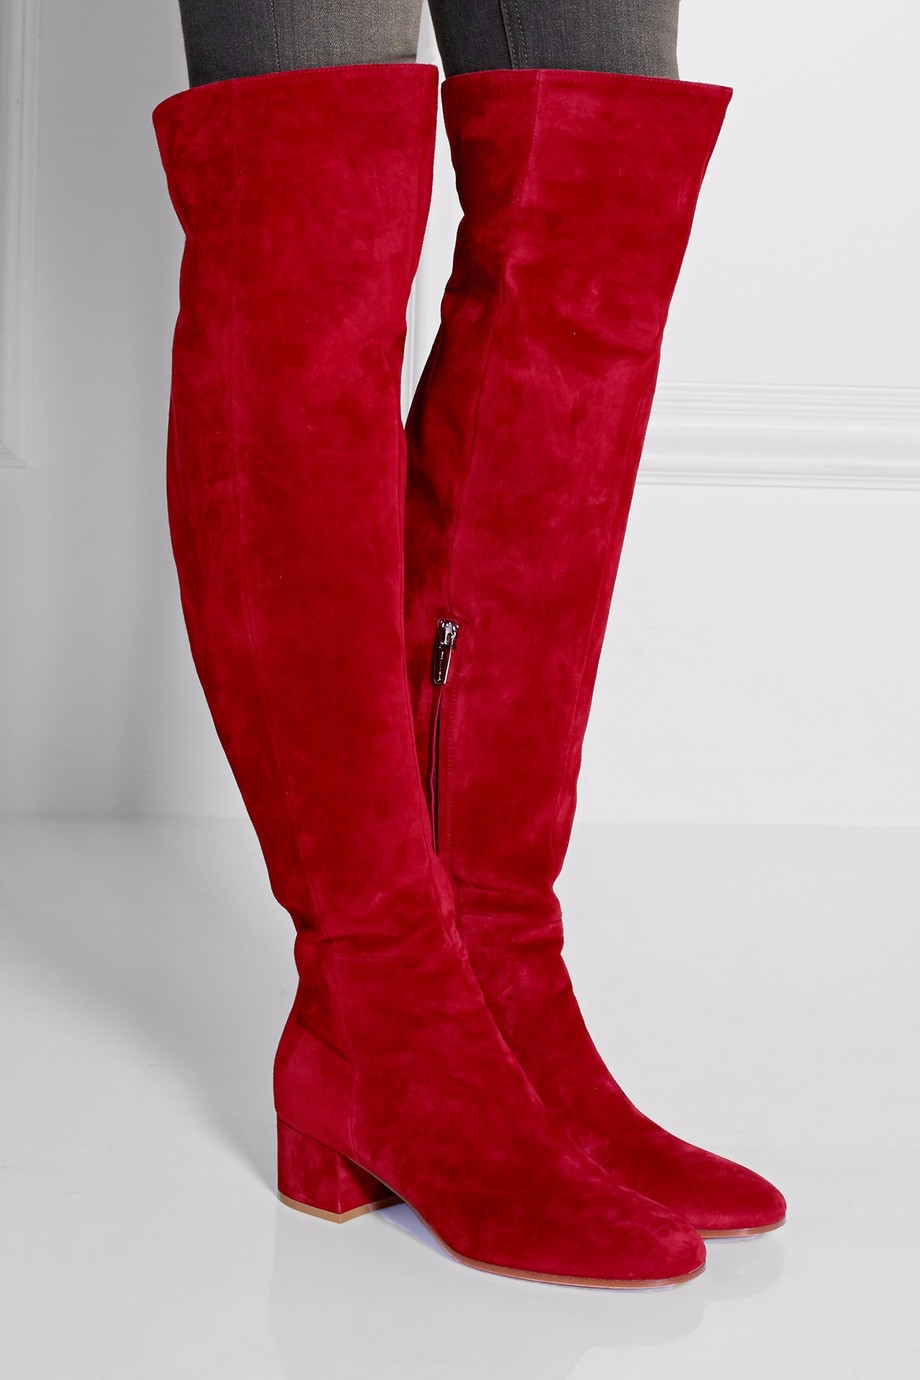 Autumn Winter Red Suede Round Toe Over The Knee Boots Thick Heels Woman Fashion Tight High Boots Winter Long Boots new bottes femmes 2015 calzado mujer autumn winter knee high boots suede womens chunky thick heels sexy fashion winter boots